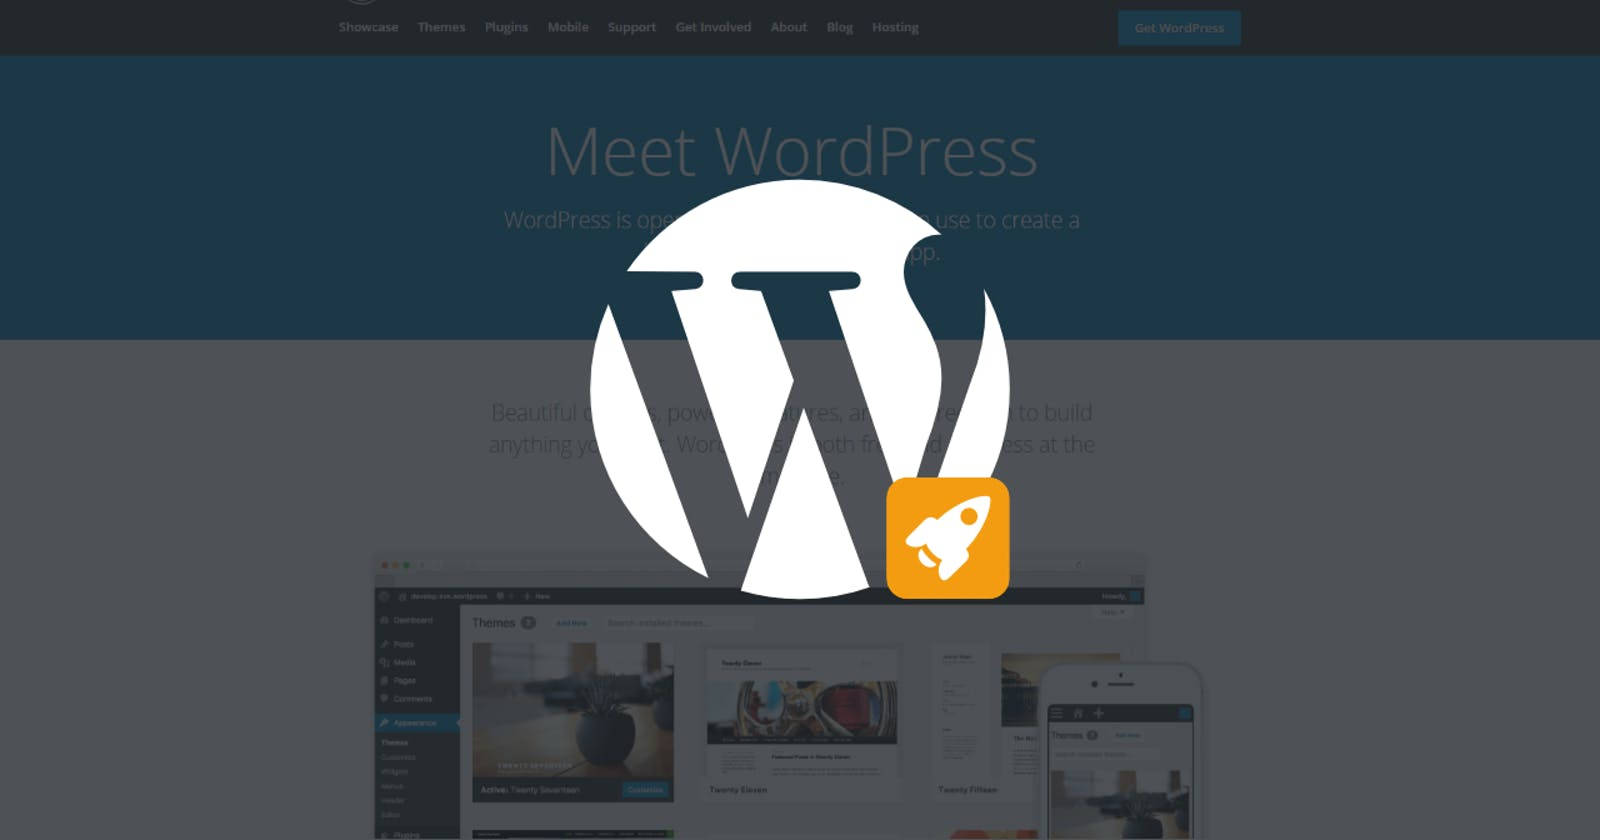 WordPress: Faster WP_Query with preselected fields